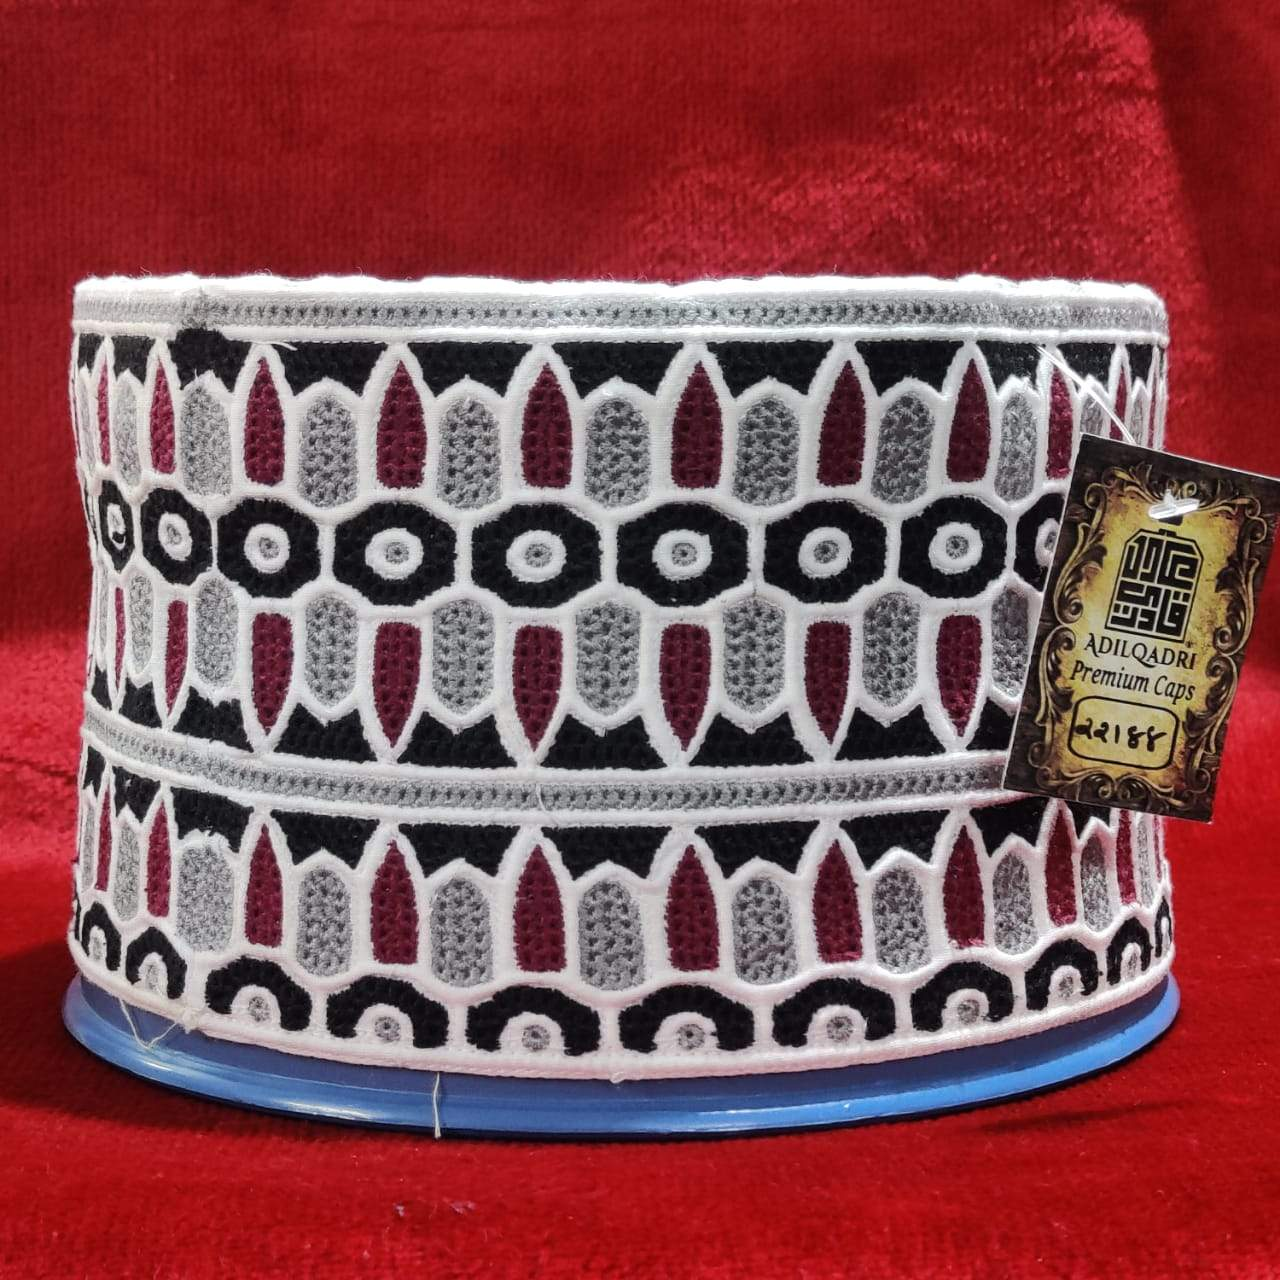 Adilqadri New Original Omani Barkati Cap Soft Cotton Material Model No 22188 Size 22 (Barkati Topi)